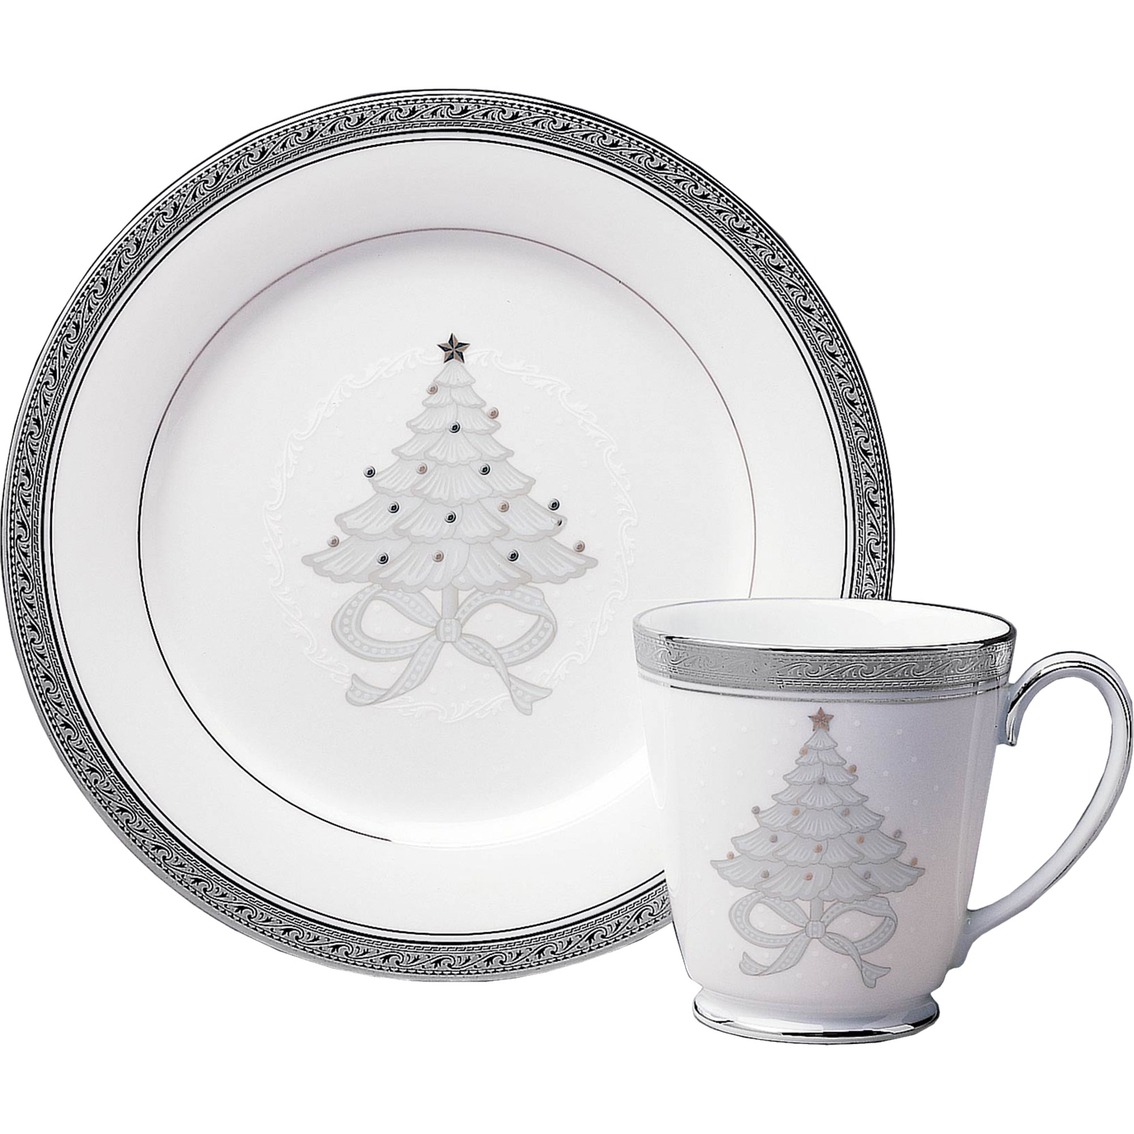 Noritake Crestwood Platinum 4 Pc. Holiday Accent Plate Set | Place ...